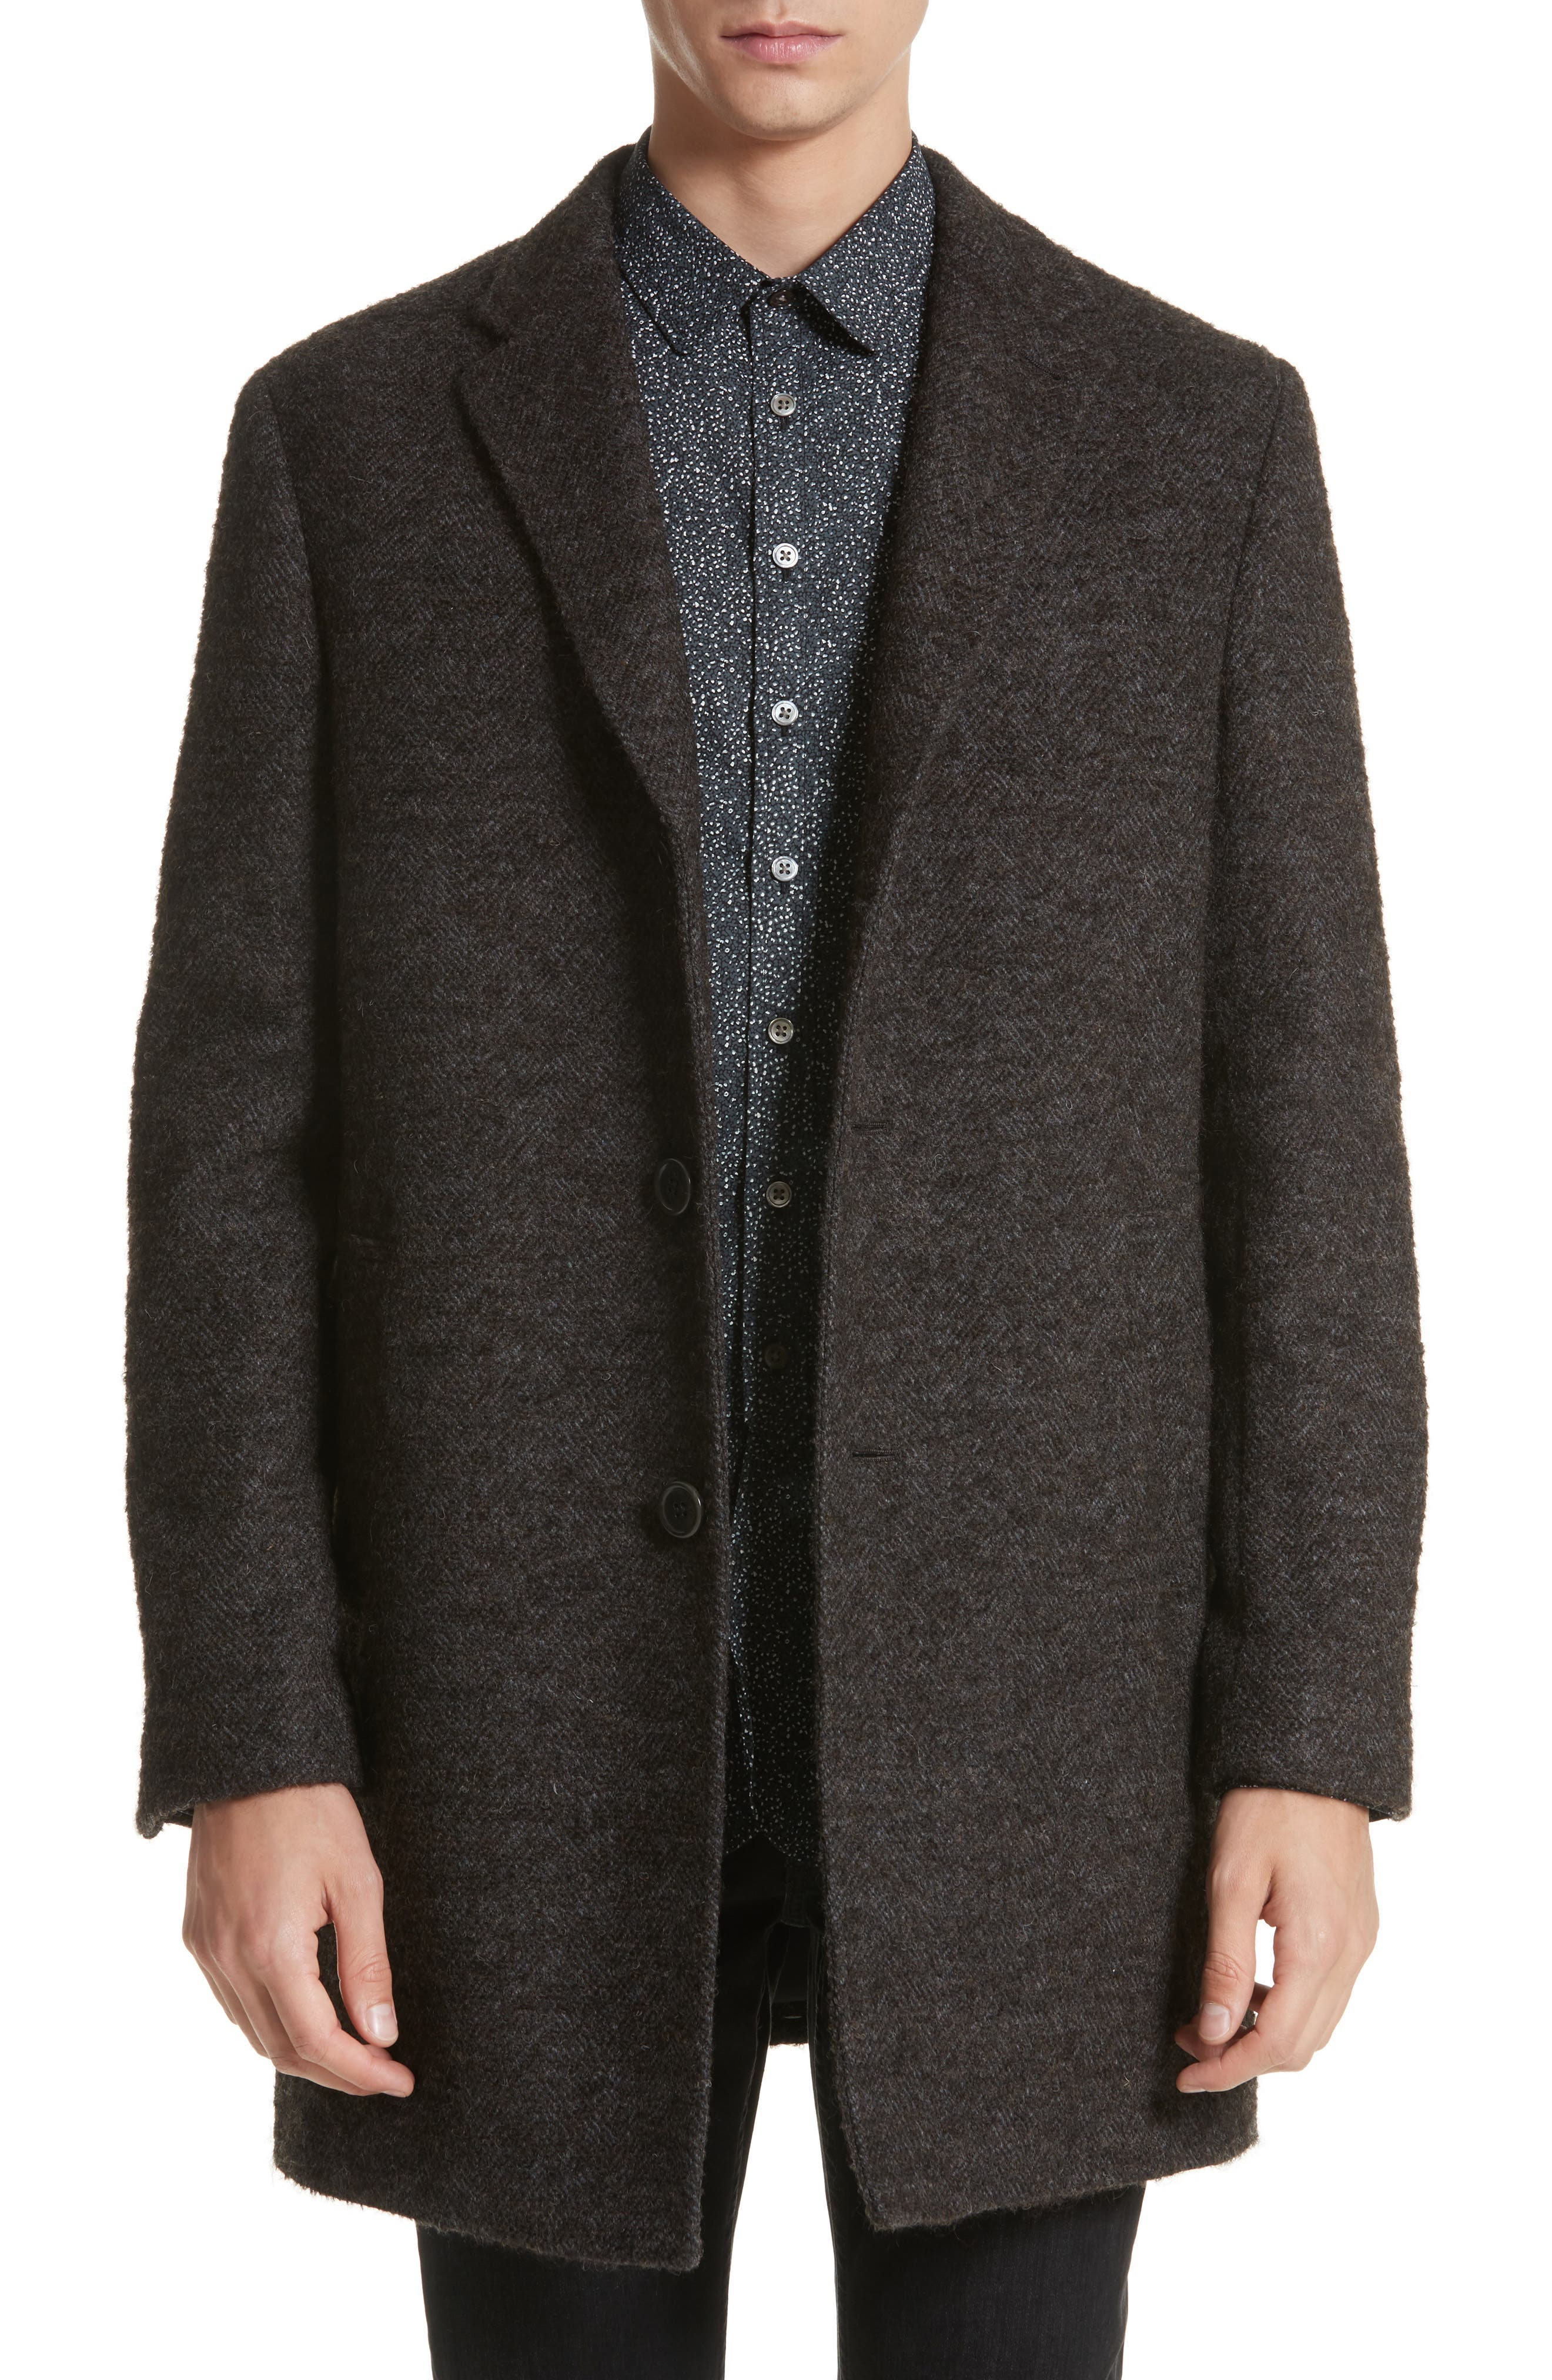 Walsh Wool Blend Topcoat,                         Main,                         color, Brown/ White